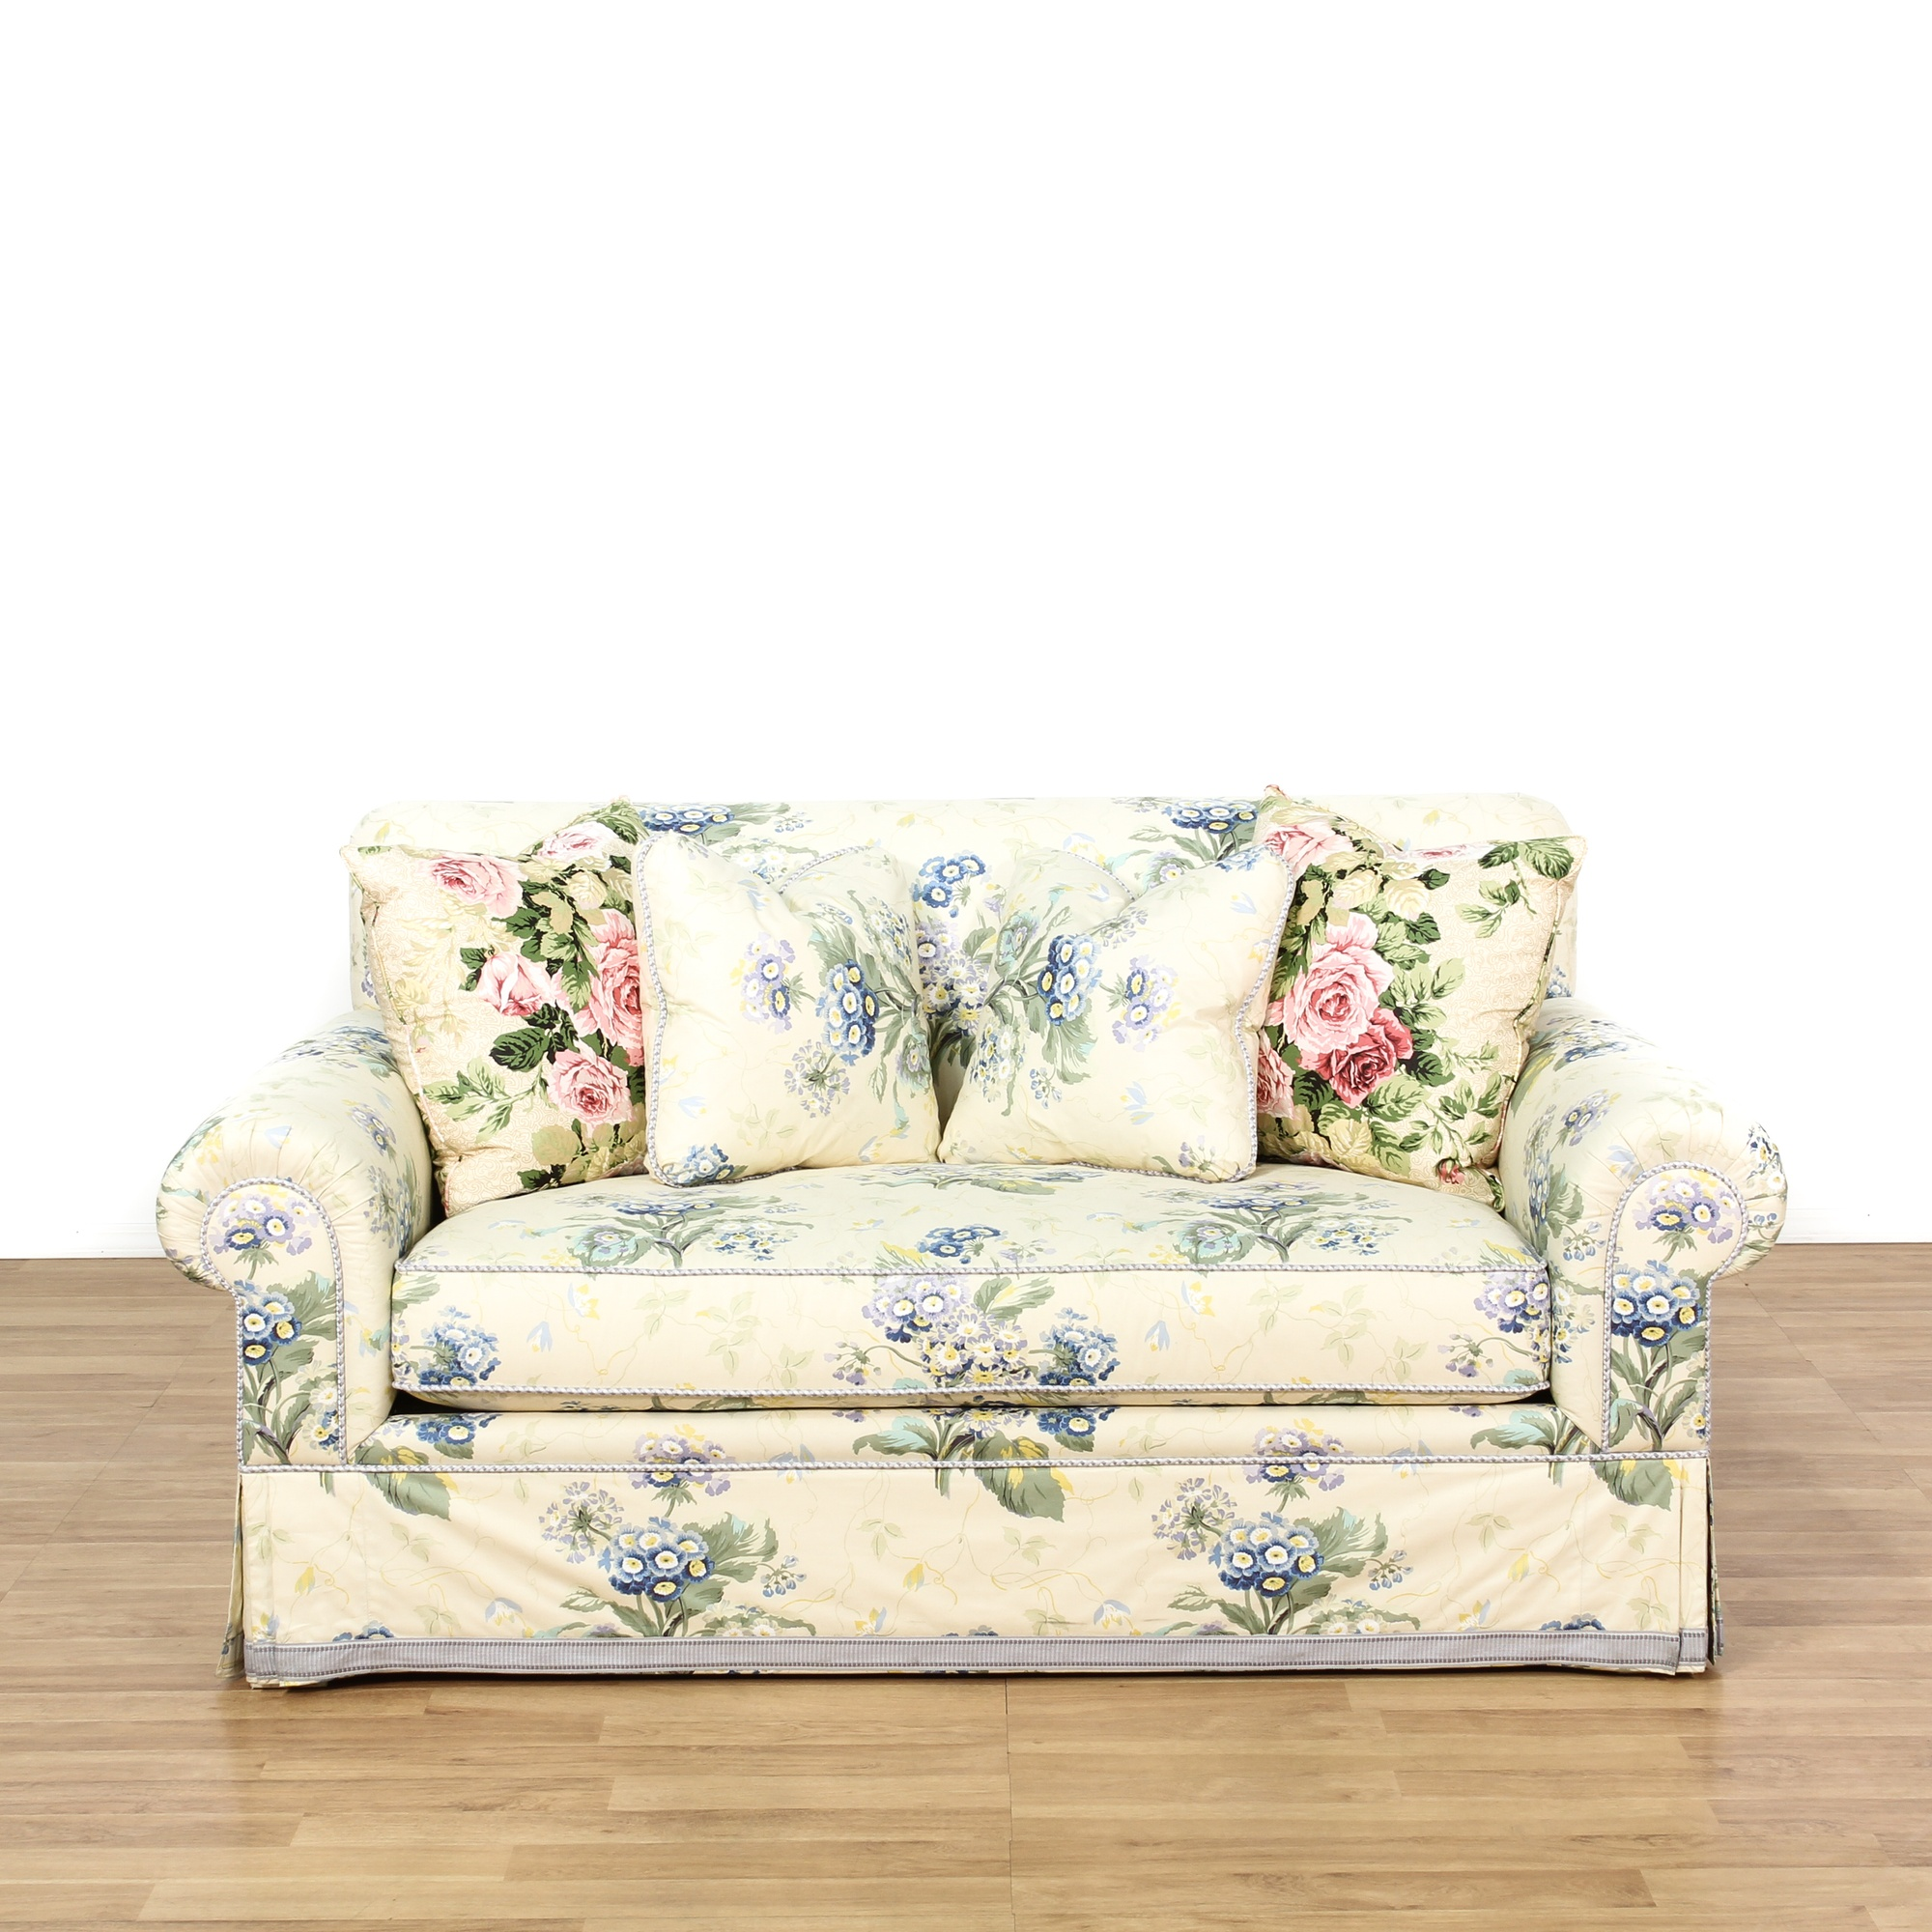 Cottage Chic Floral Upholstered Loveseat Loveseat